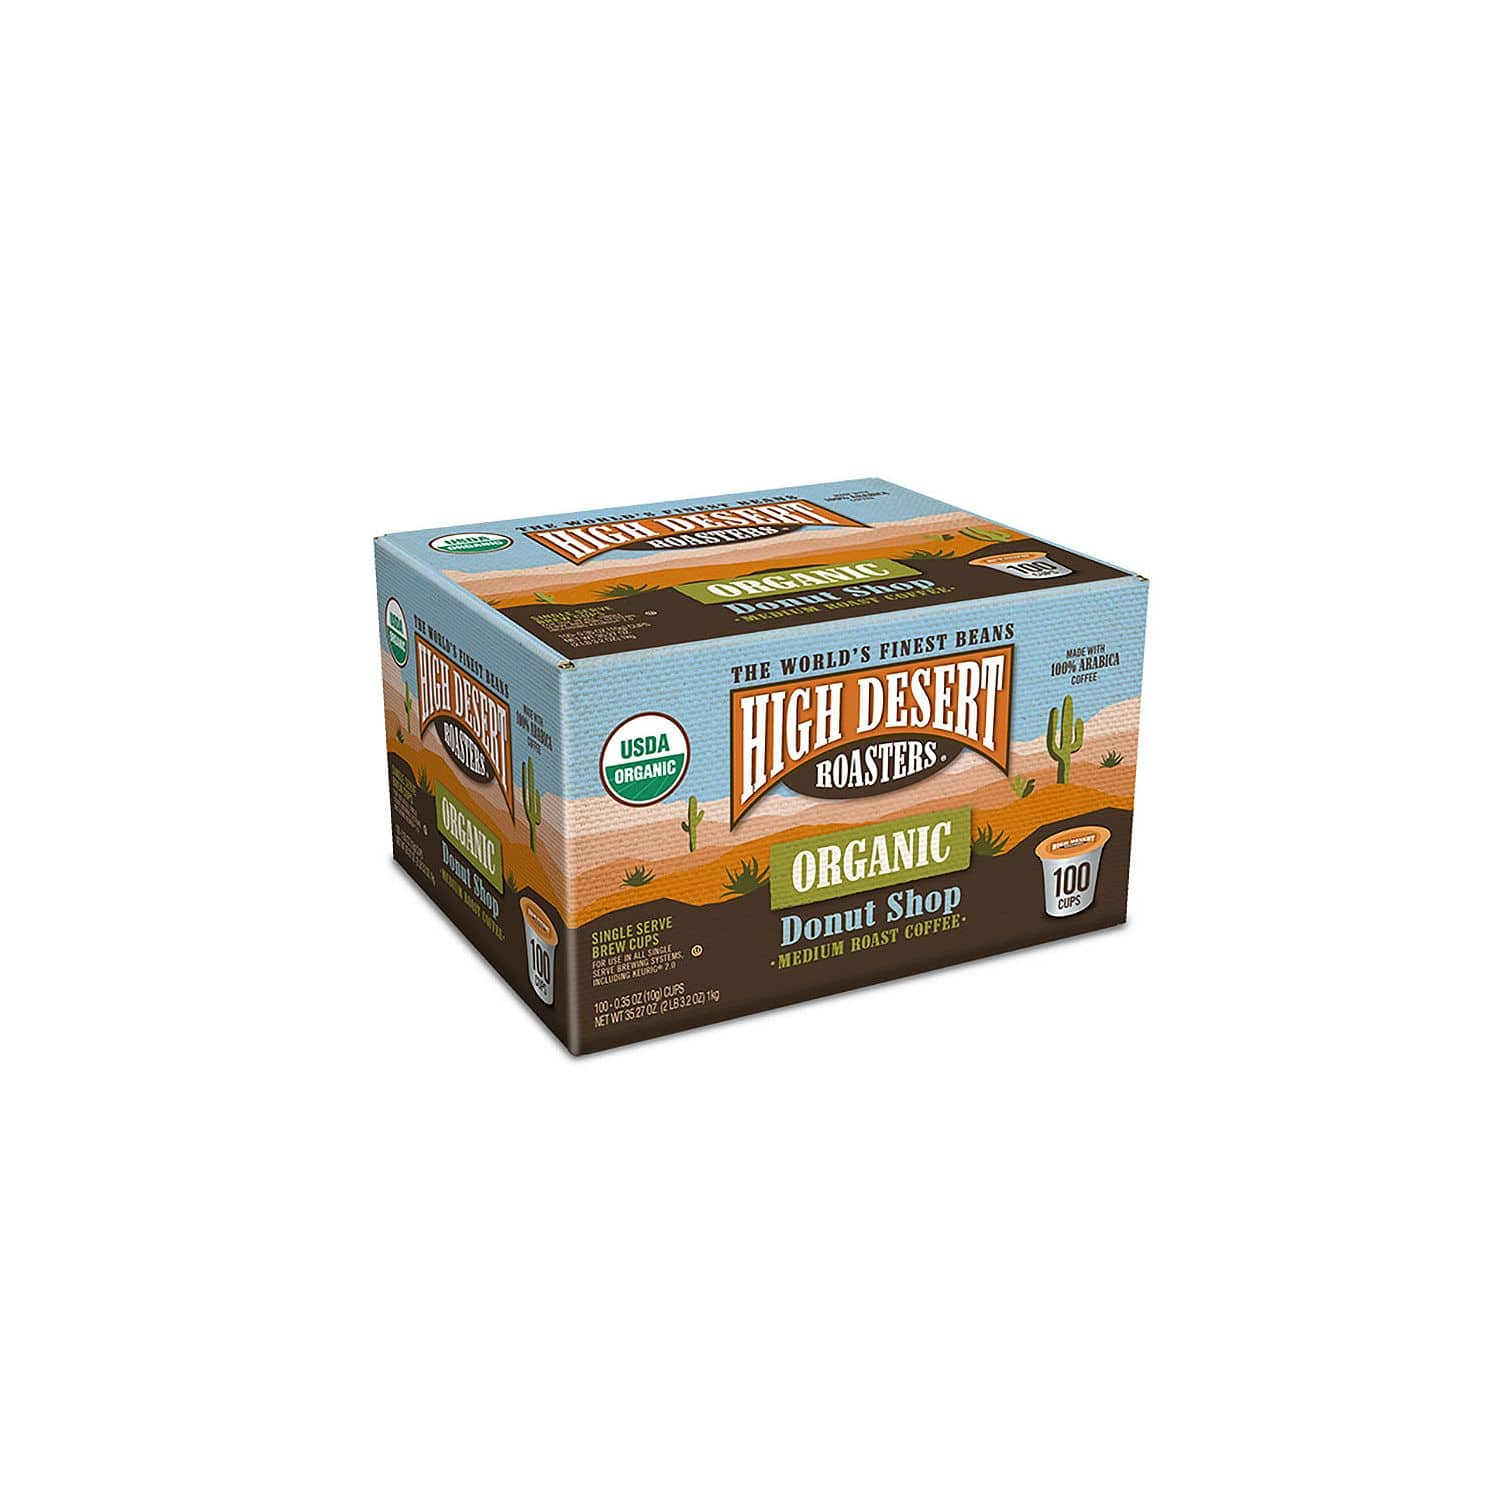 100-Count High Desert Roasters Organic Donut Shop Medium Roast Coffee K-Cups for $22.81 + Free Shipping @ Sam's Club